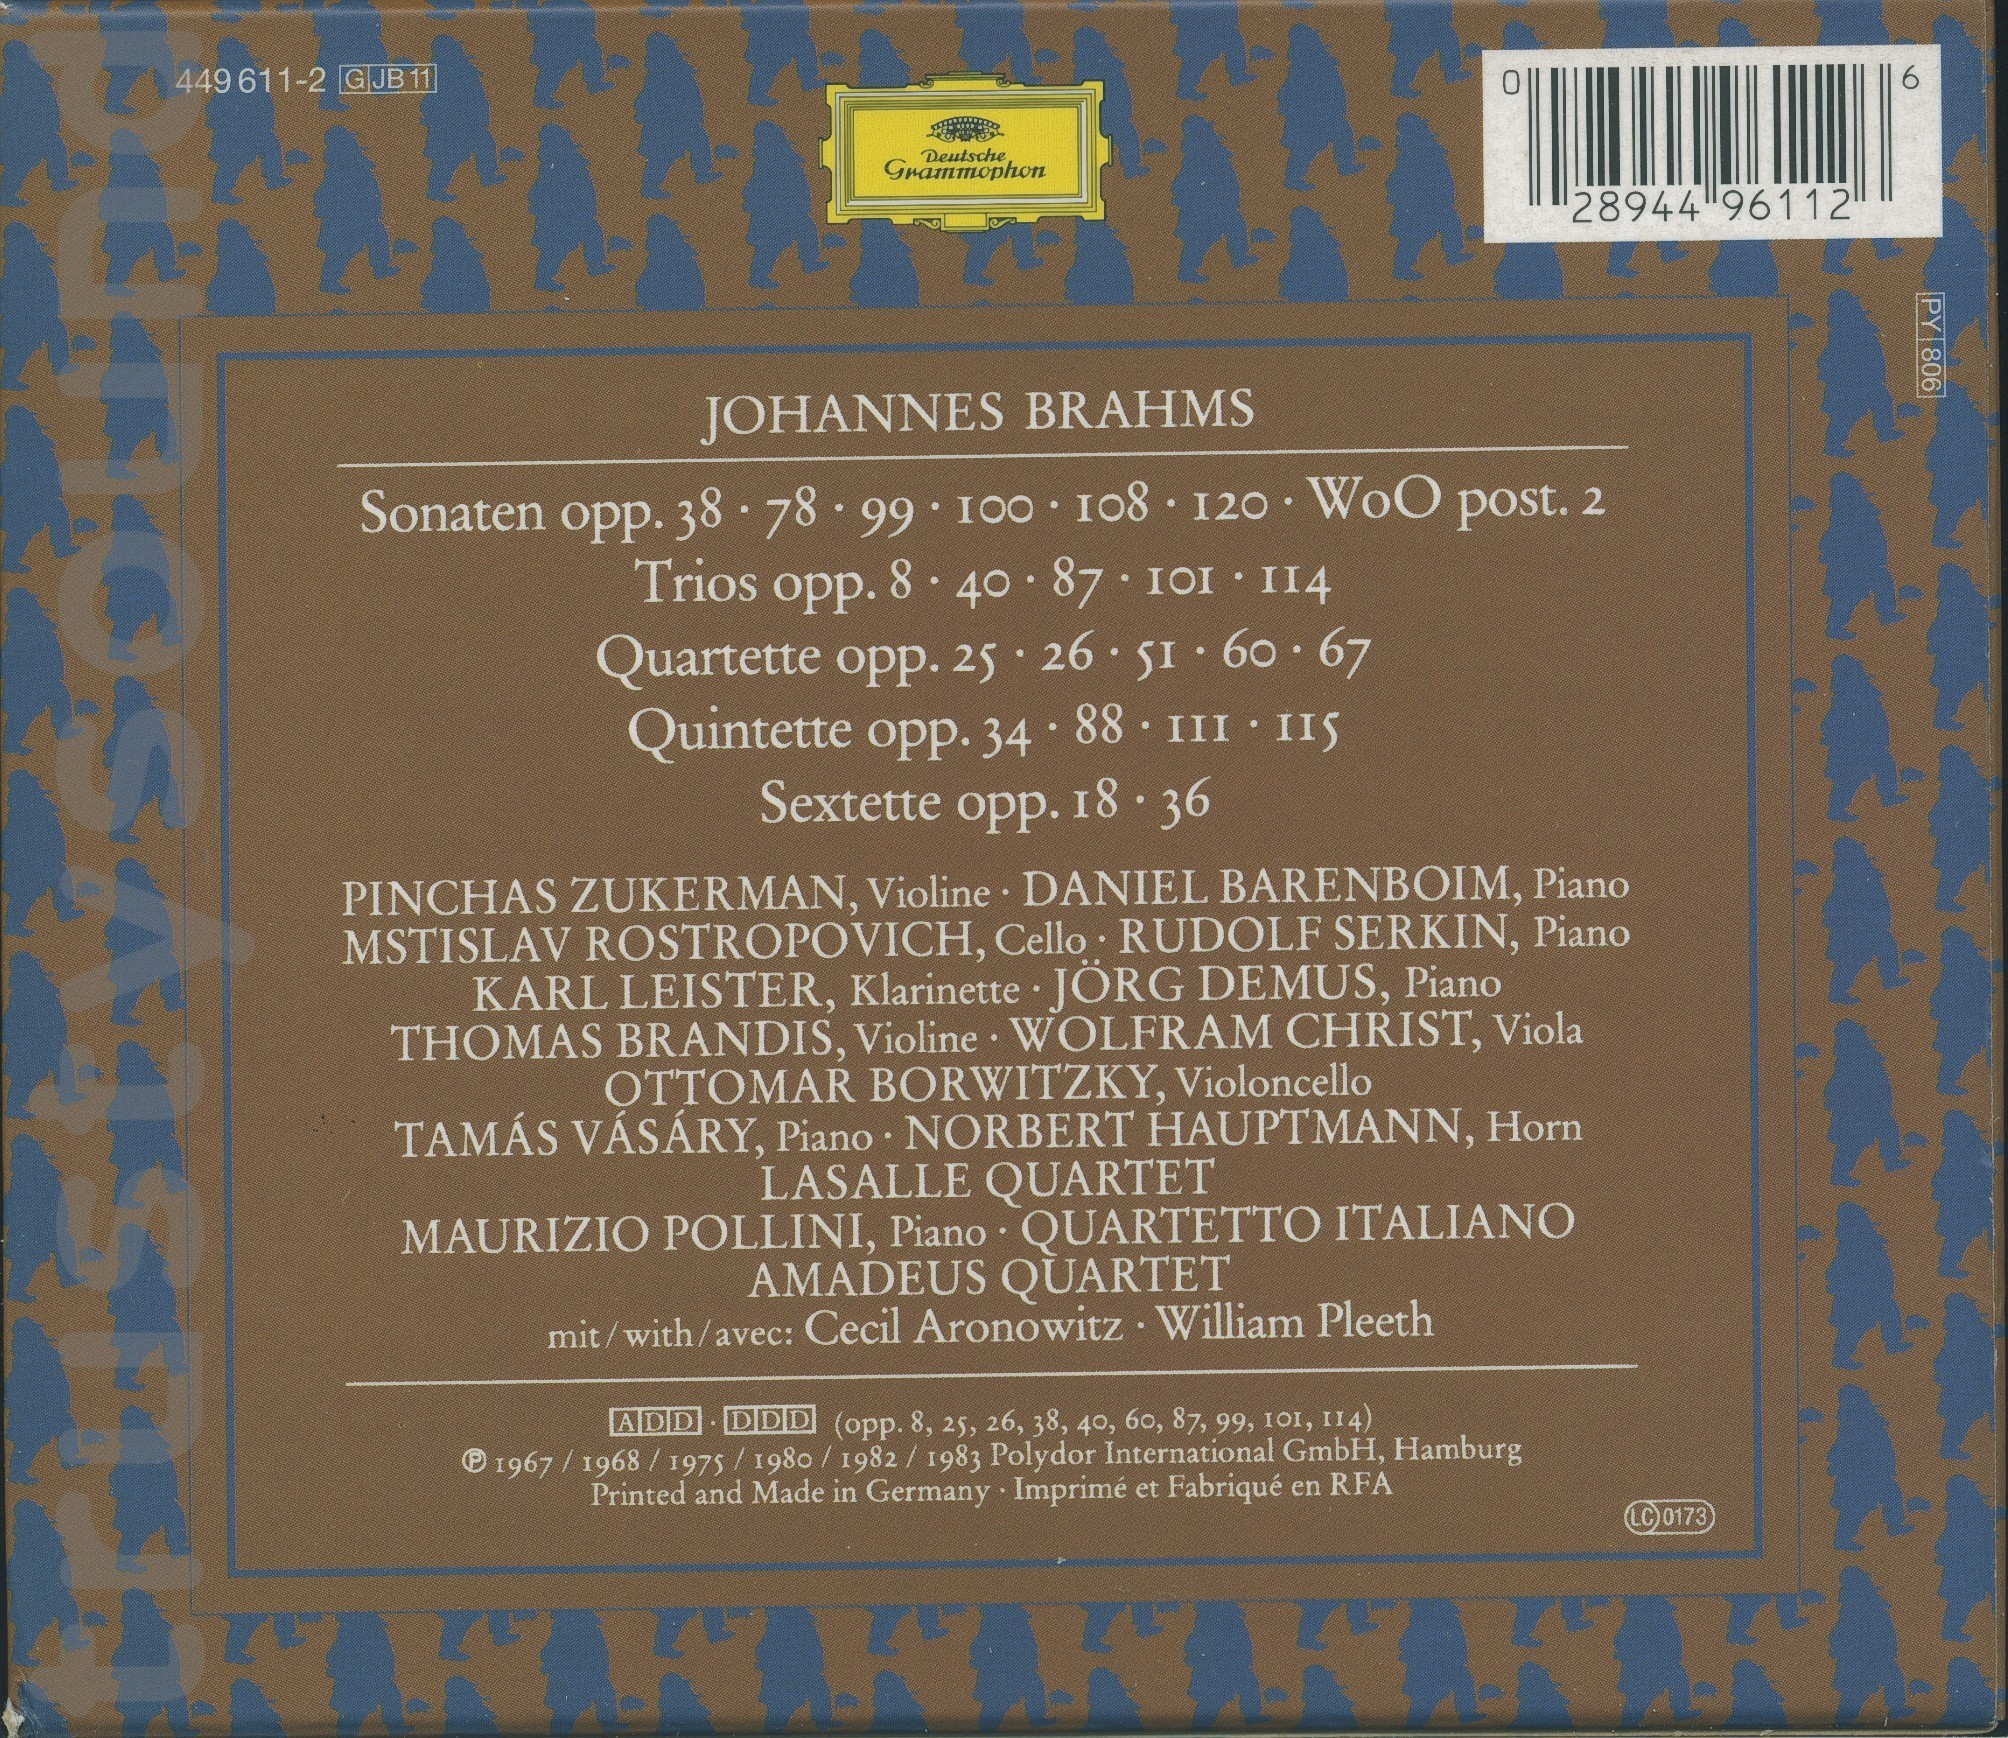 Trustysound: products: complete brahms edition 3 chamber music.